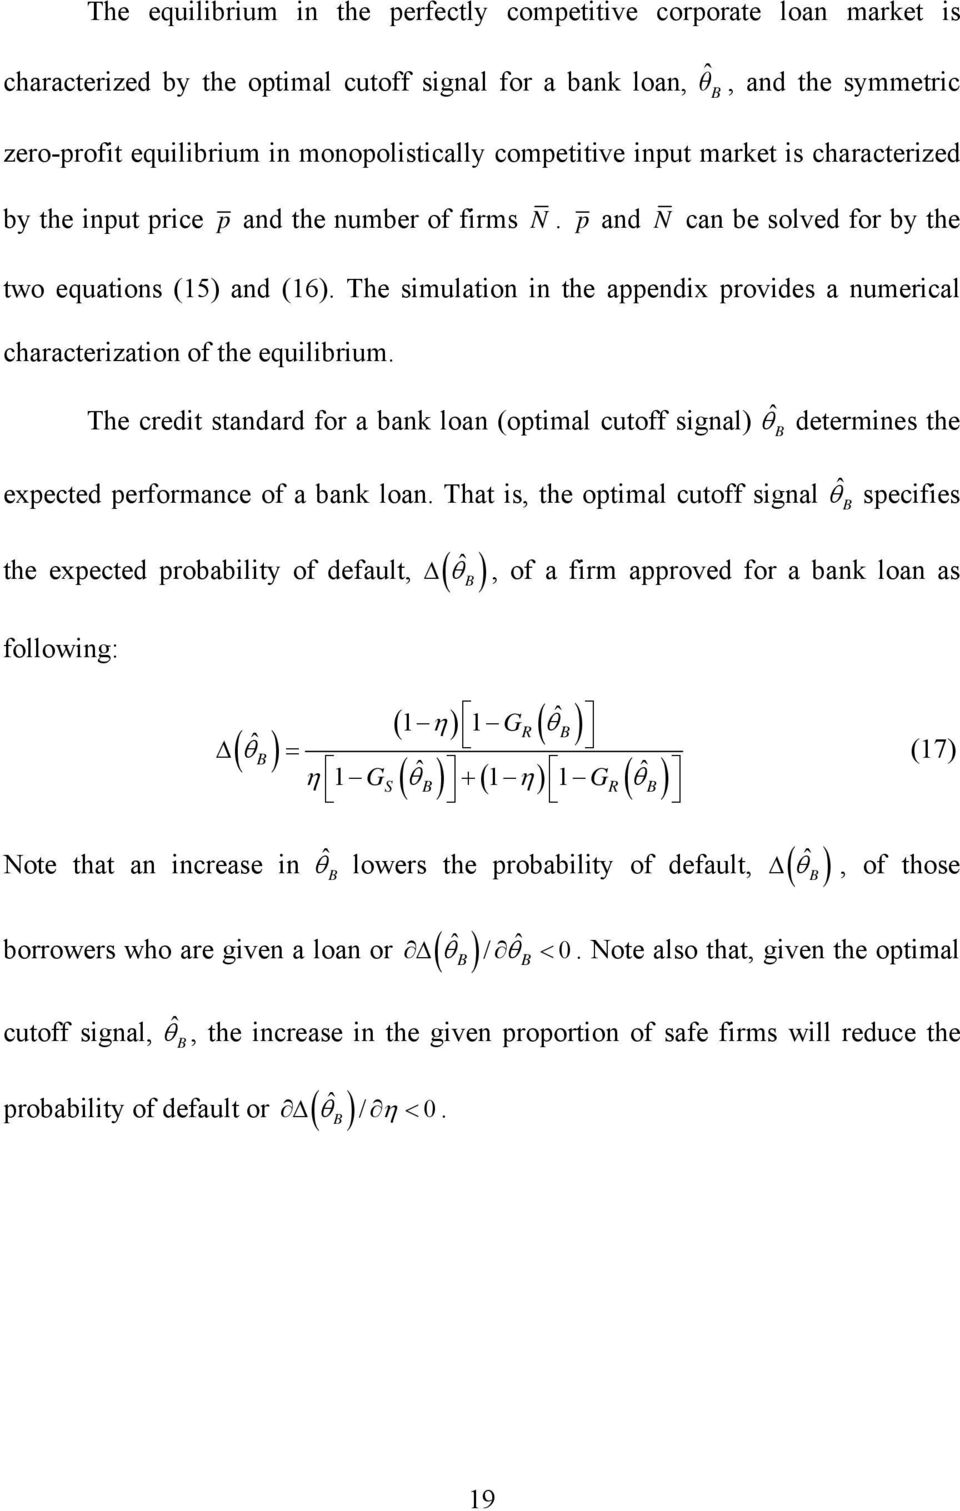 The simulation in the appendix provides a numerical characterization of the equilibrium.